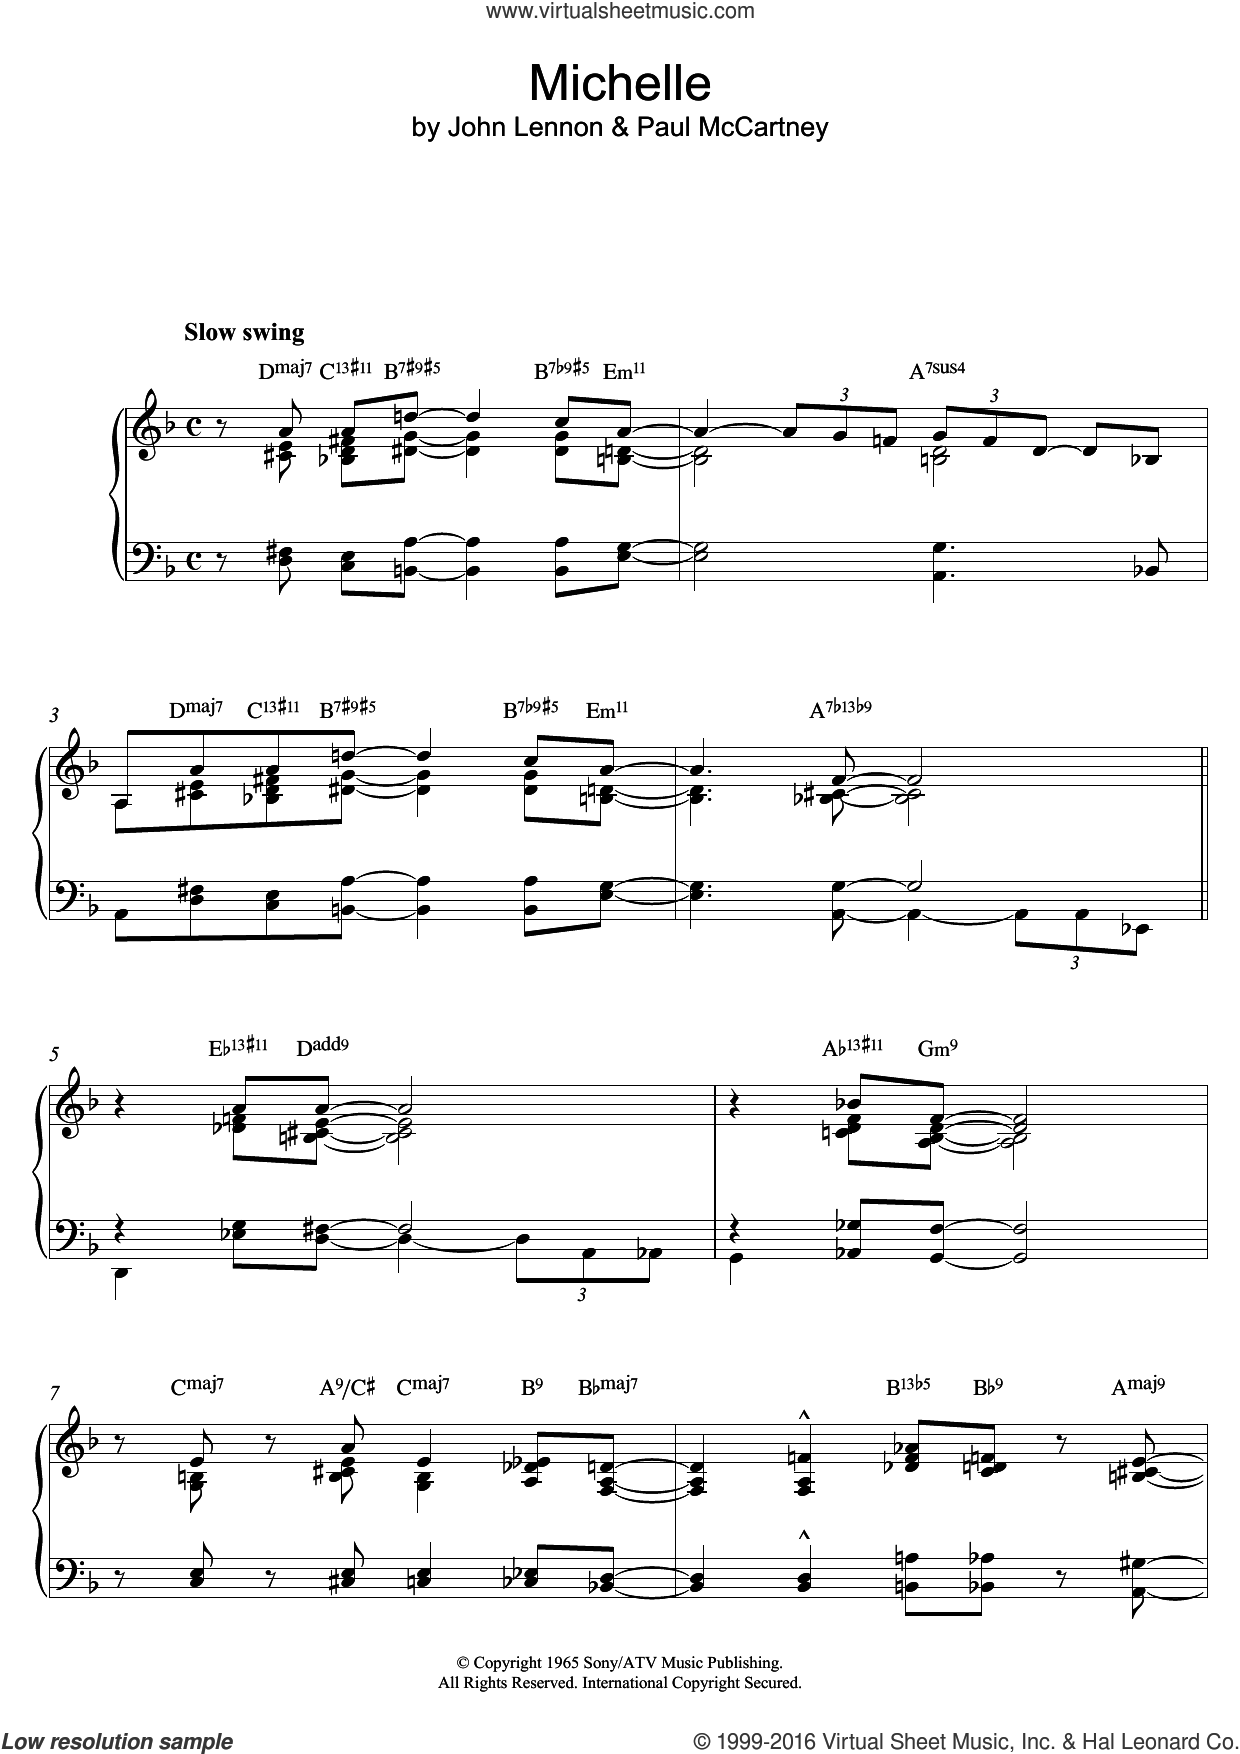 Michelle (Jazz version) sheet music for piano solo by Paul McCartney